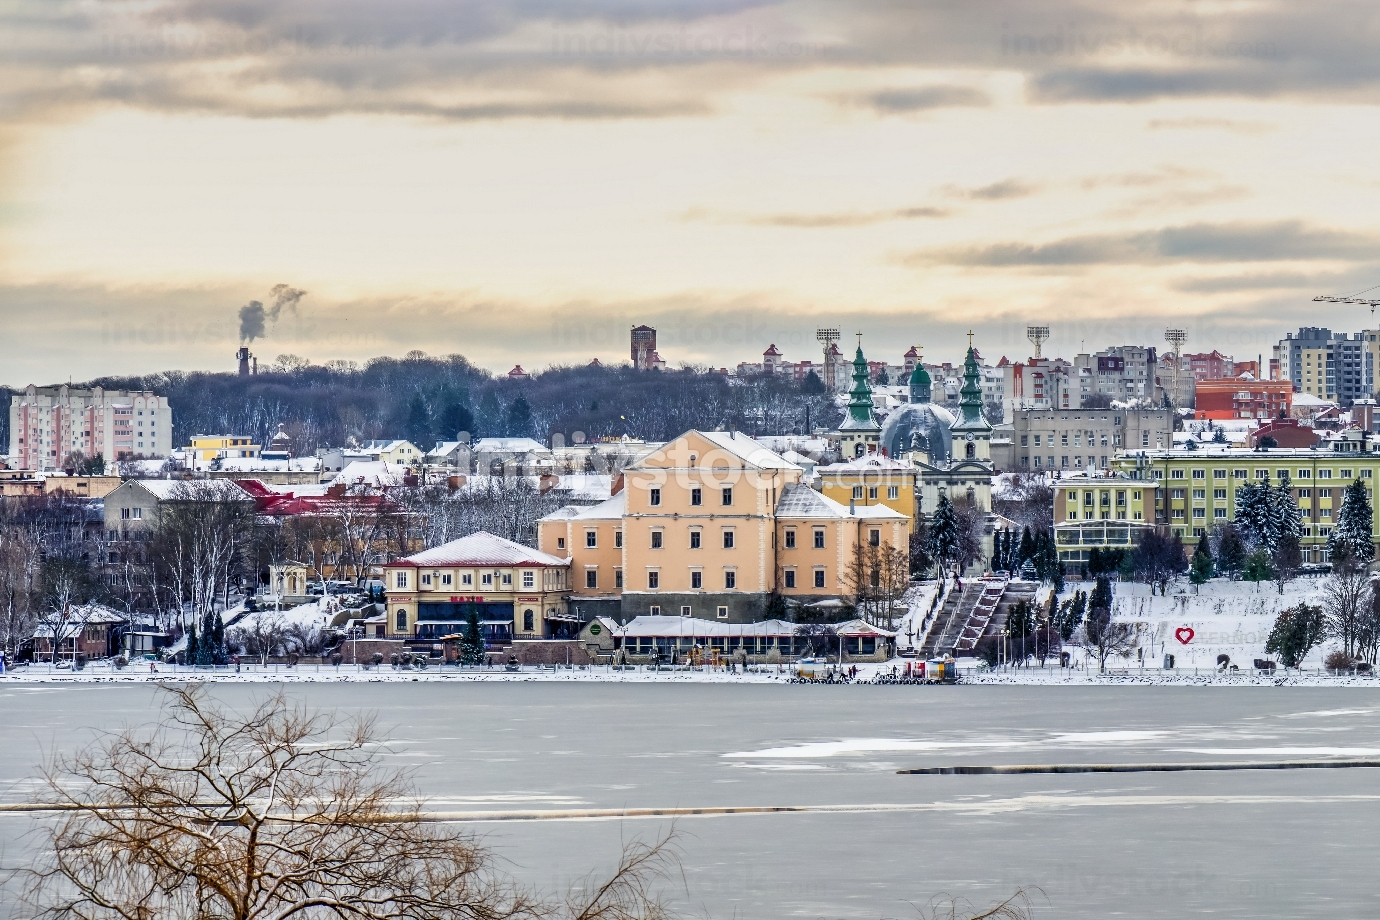 Ternopil, Ukraine 01.05.2020. Panoramic view of Ternopil pond and castle in Ternopol, Ukraine, on a snowy winter morning